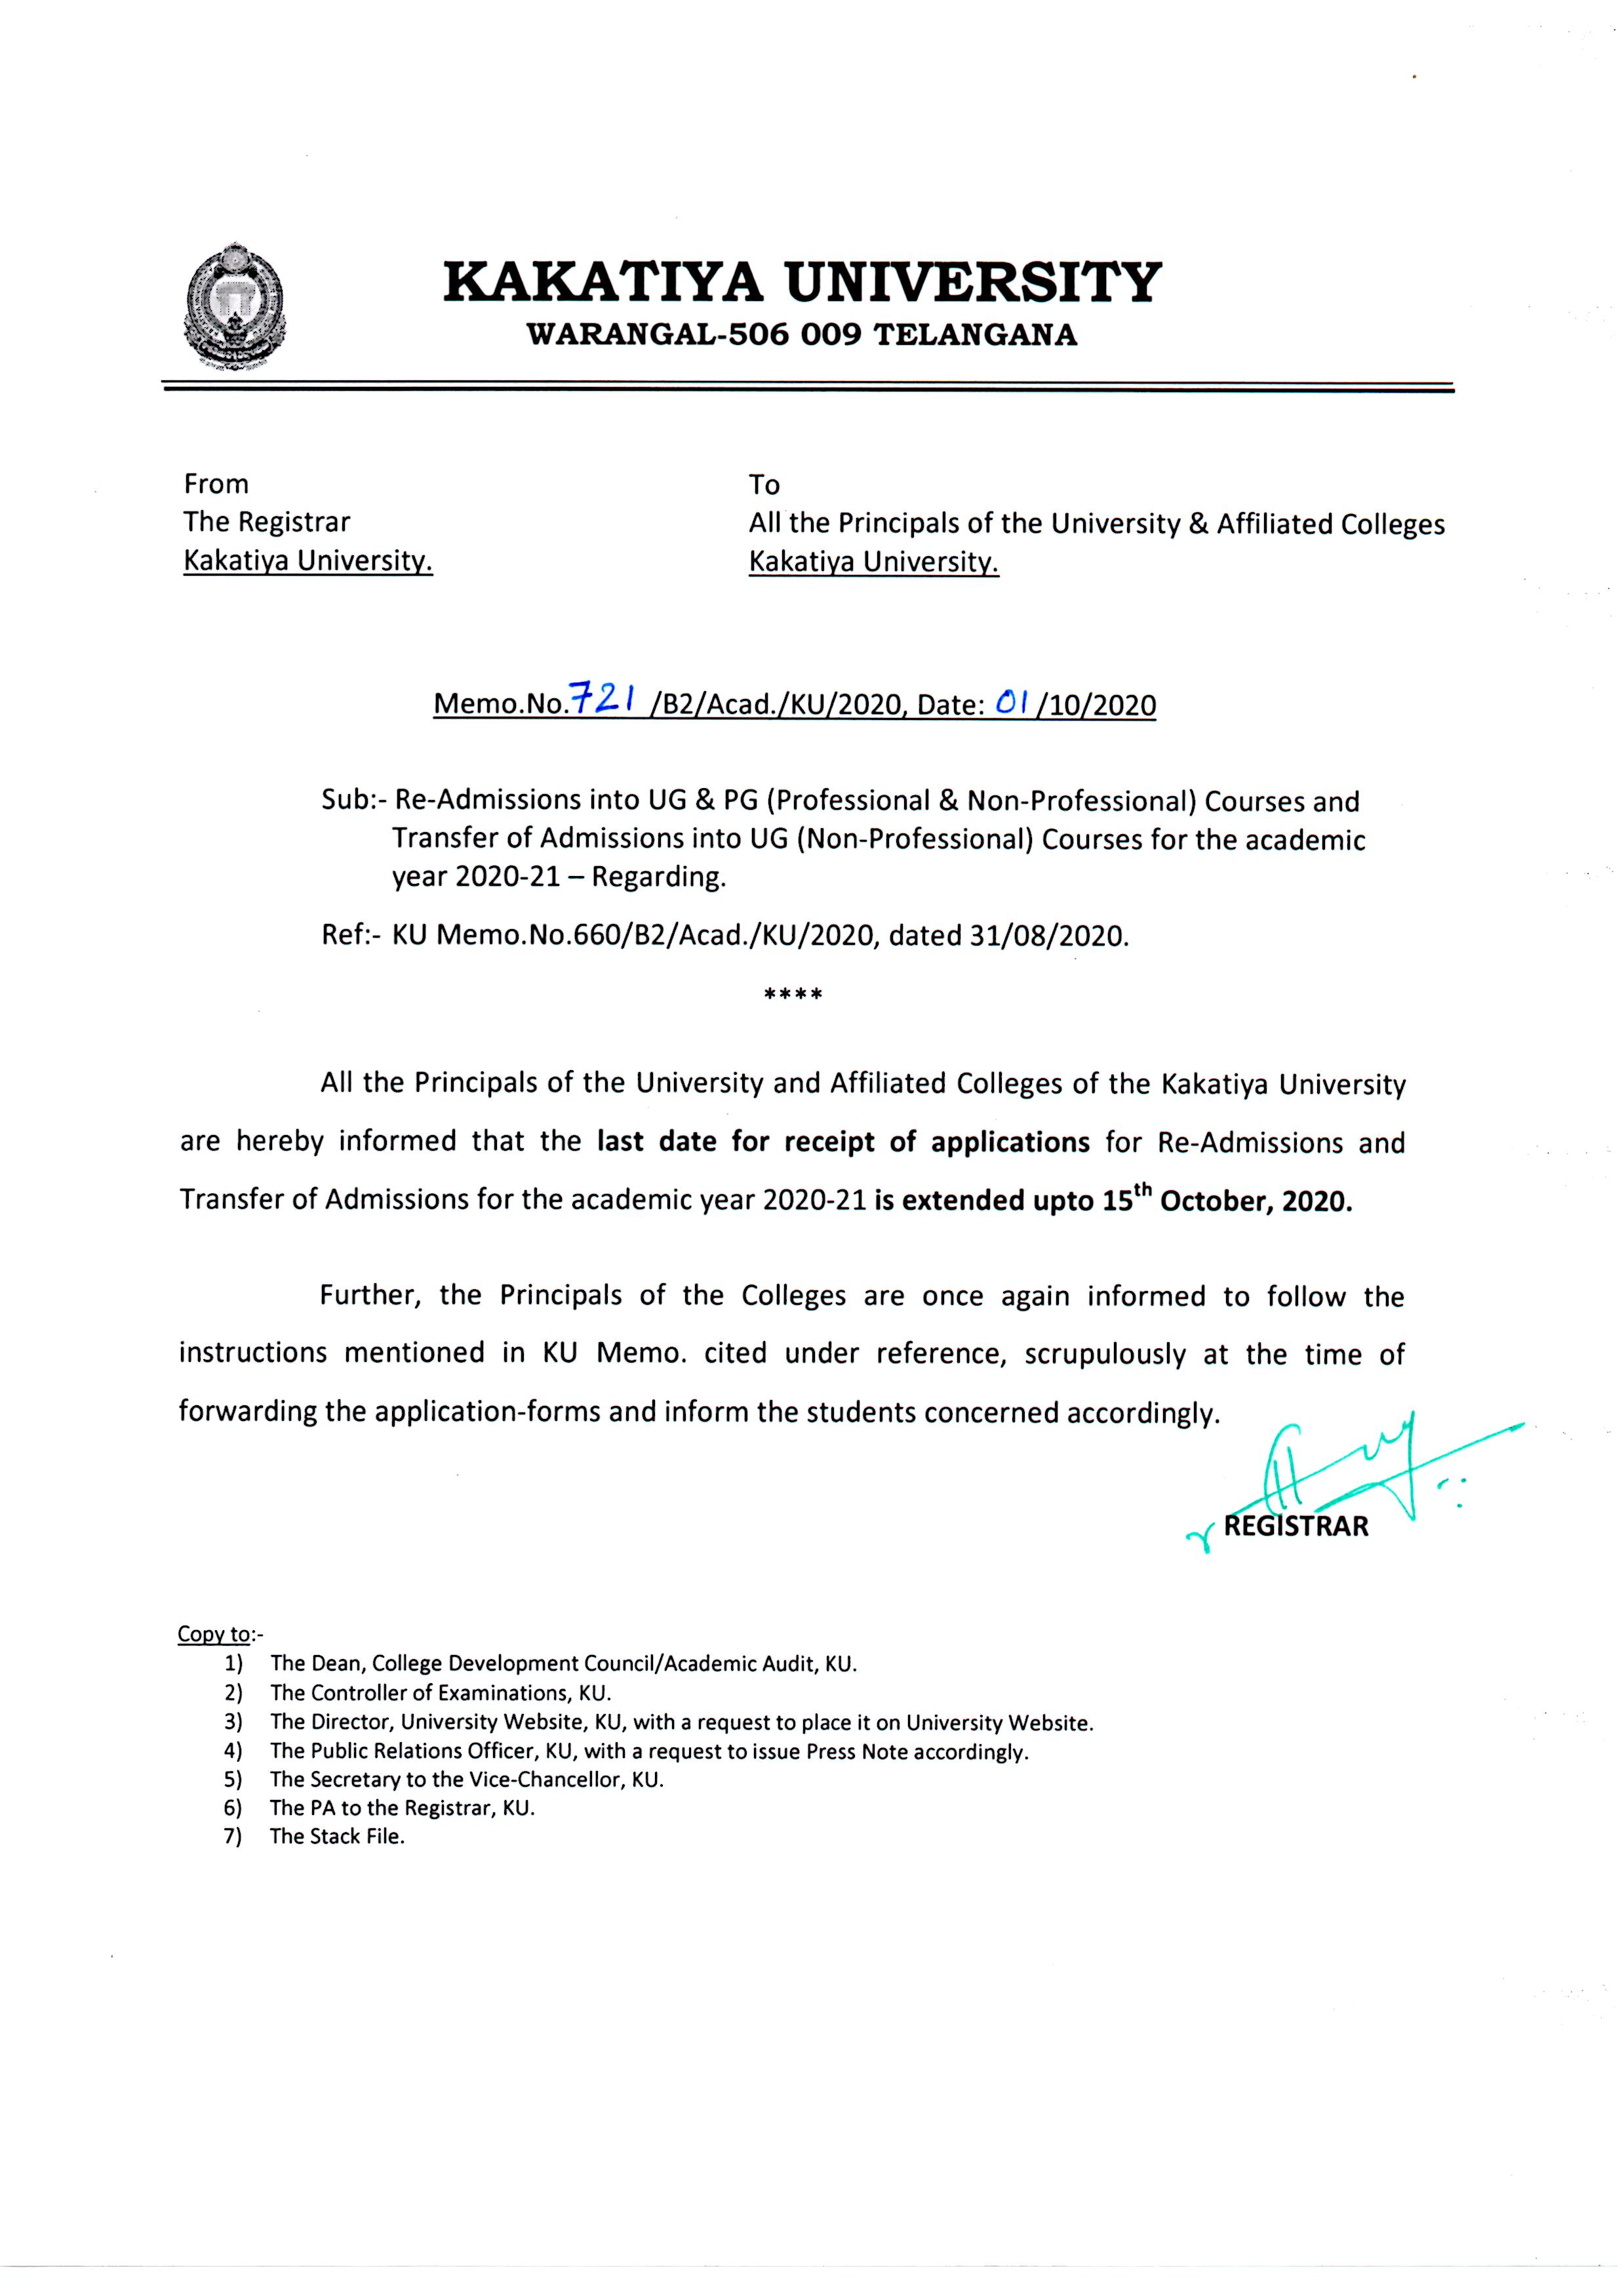 Invitation Letter For Guest Lecturer In Engineering College from kakatiya.ac.in